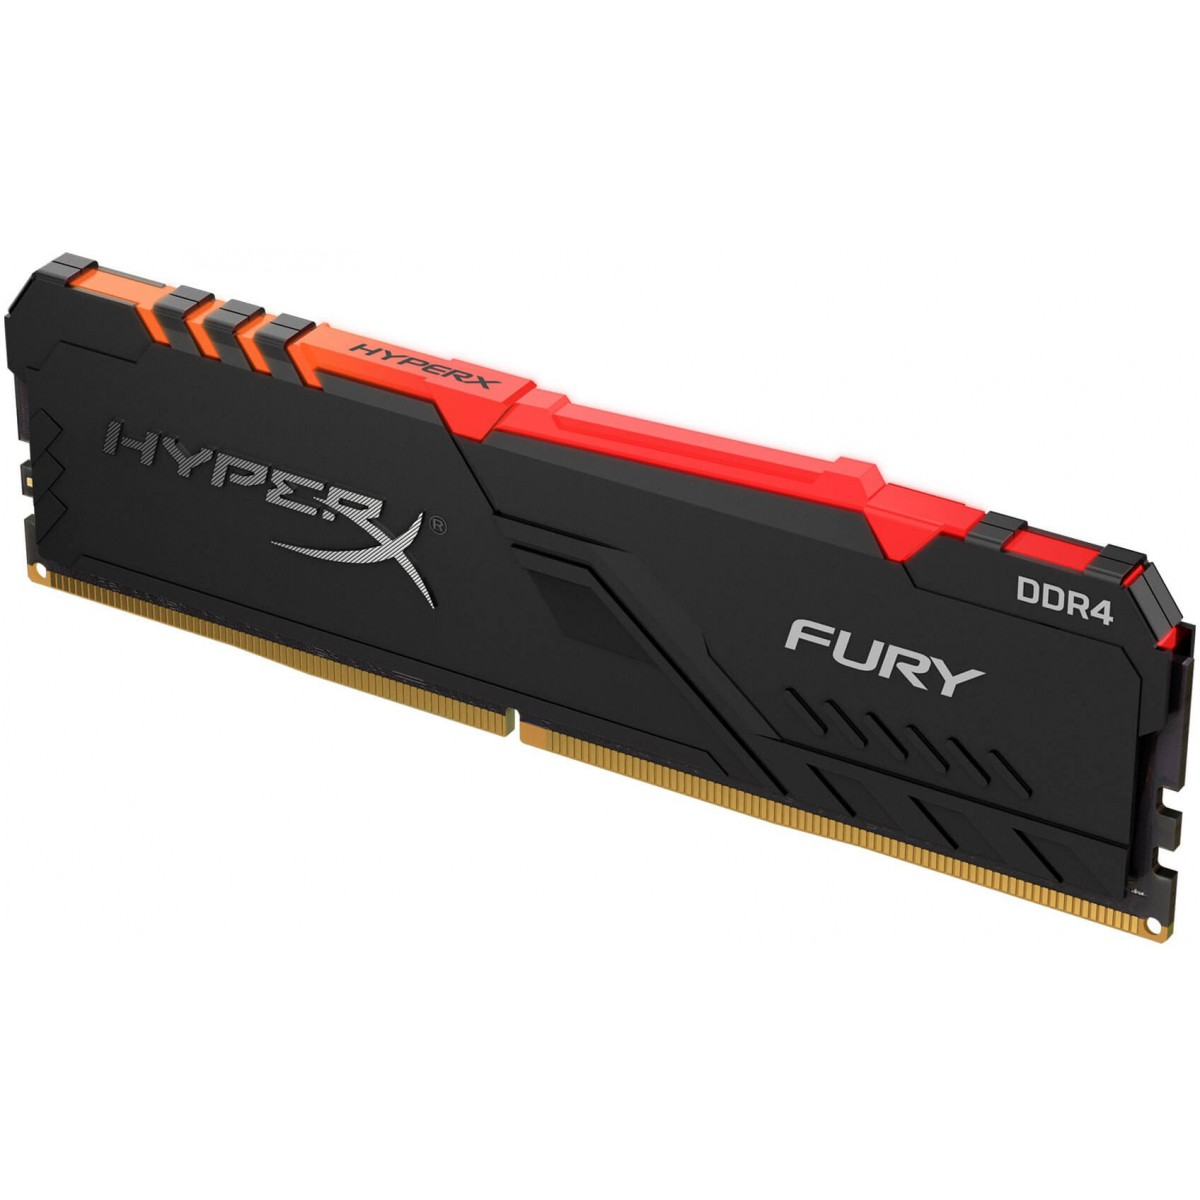 Memória DDR4 Kingston HyperX Fury RGB, 16GB 3600MHz, Black, HX436C17FB3A/16